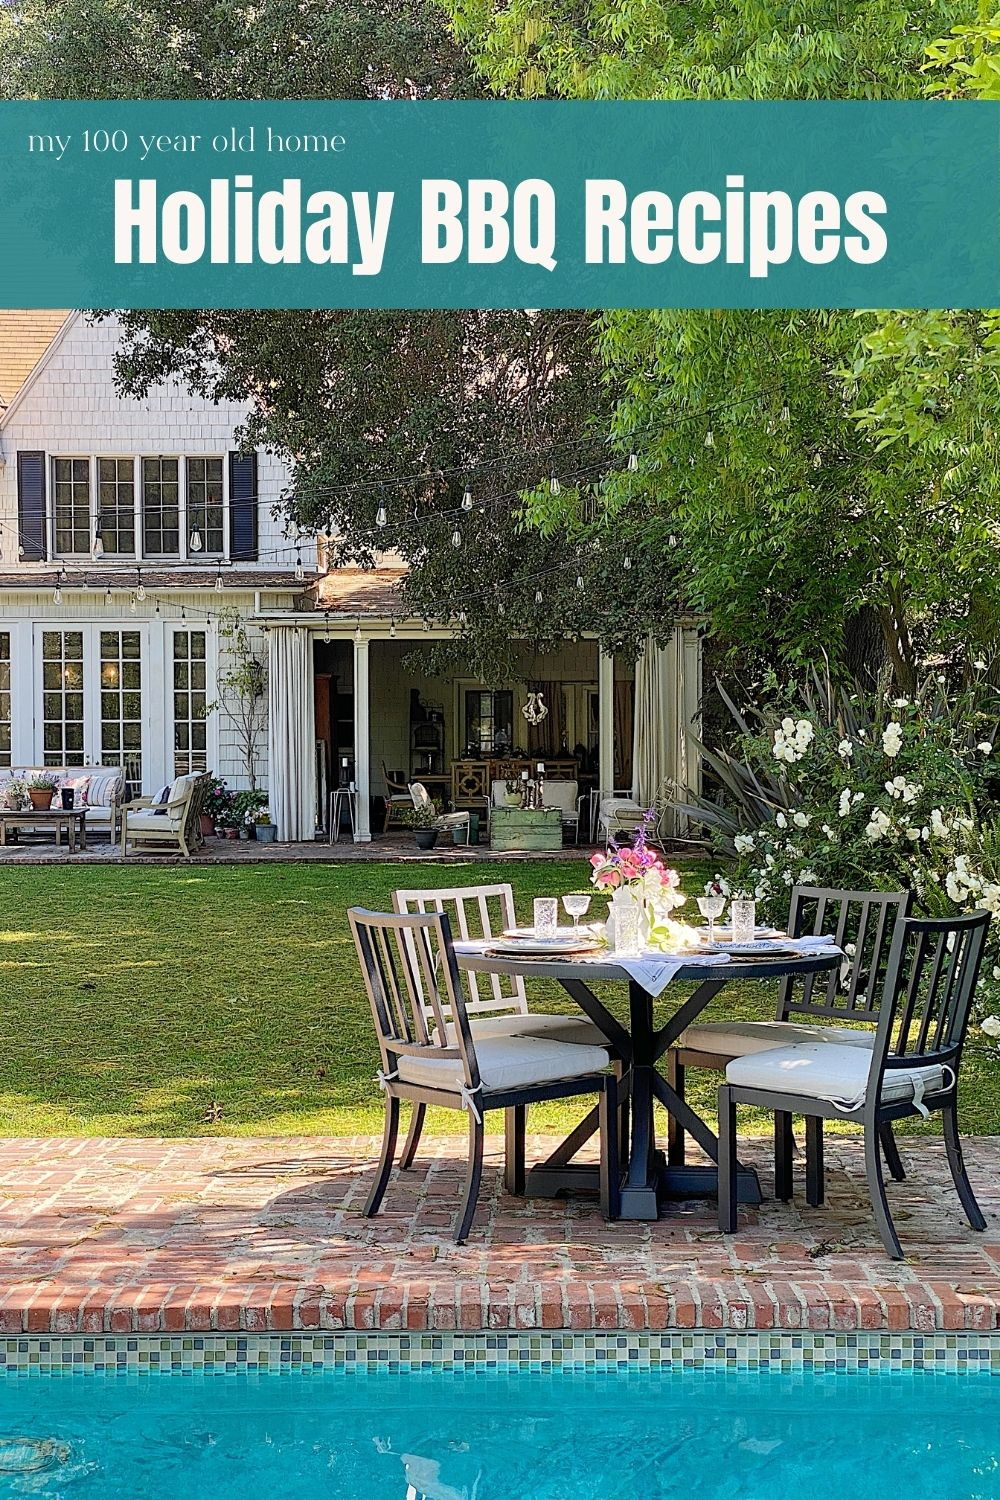 Summer days are almost here! Memorial Day marks the beginning of summer for me. Days spent outside in the sunshine. Dinners by the pool. And, my favorite BBQ recipes!